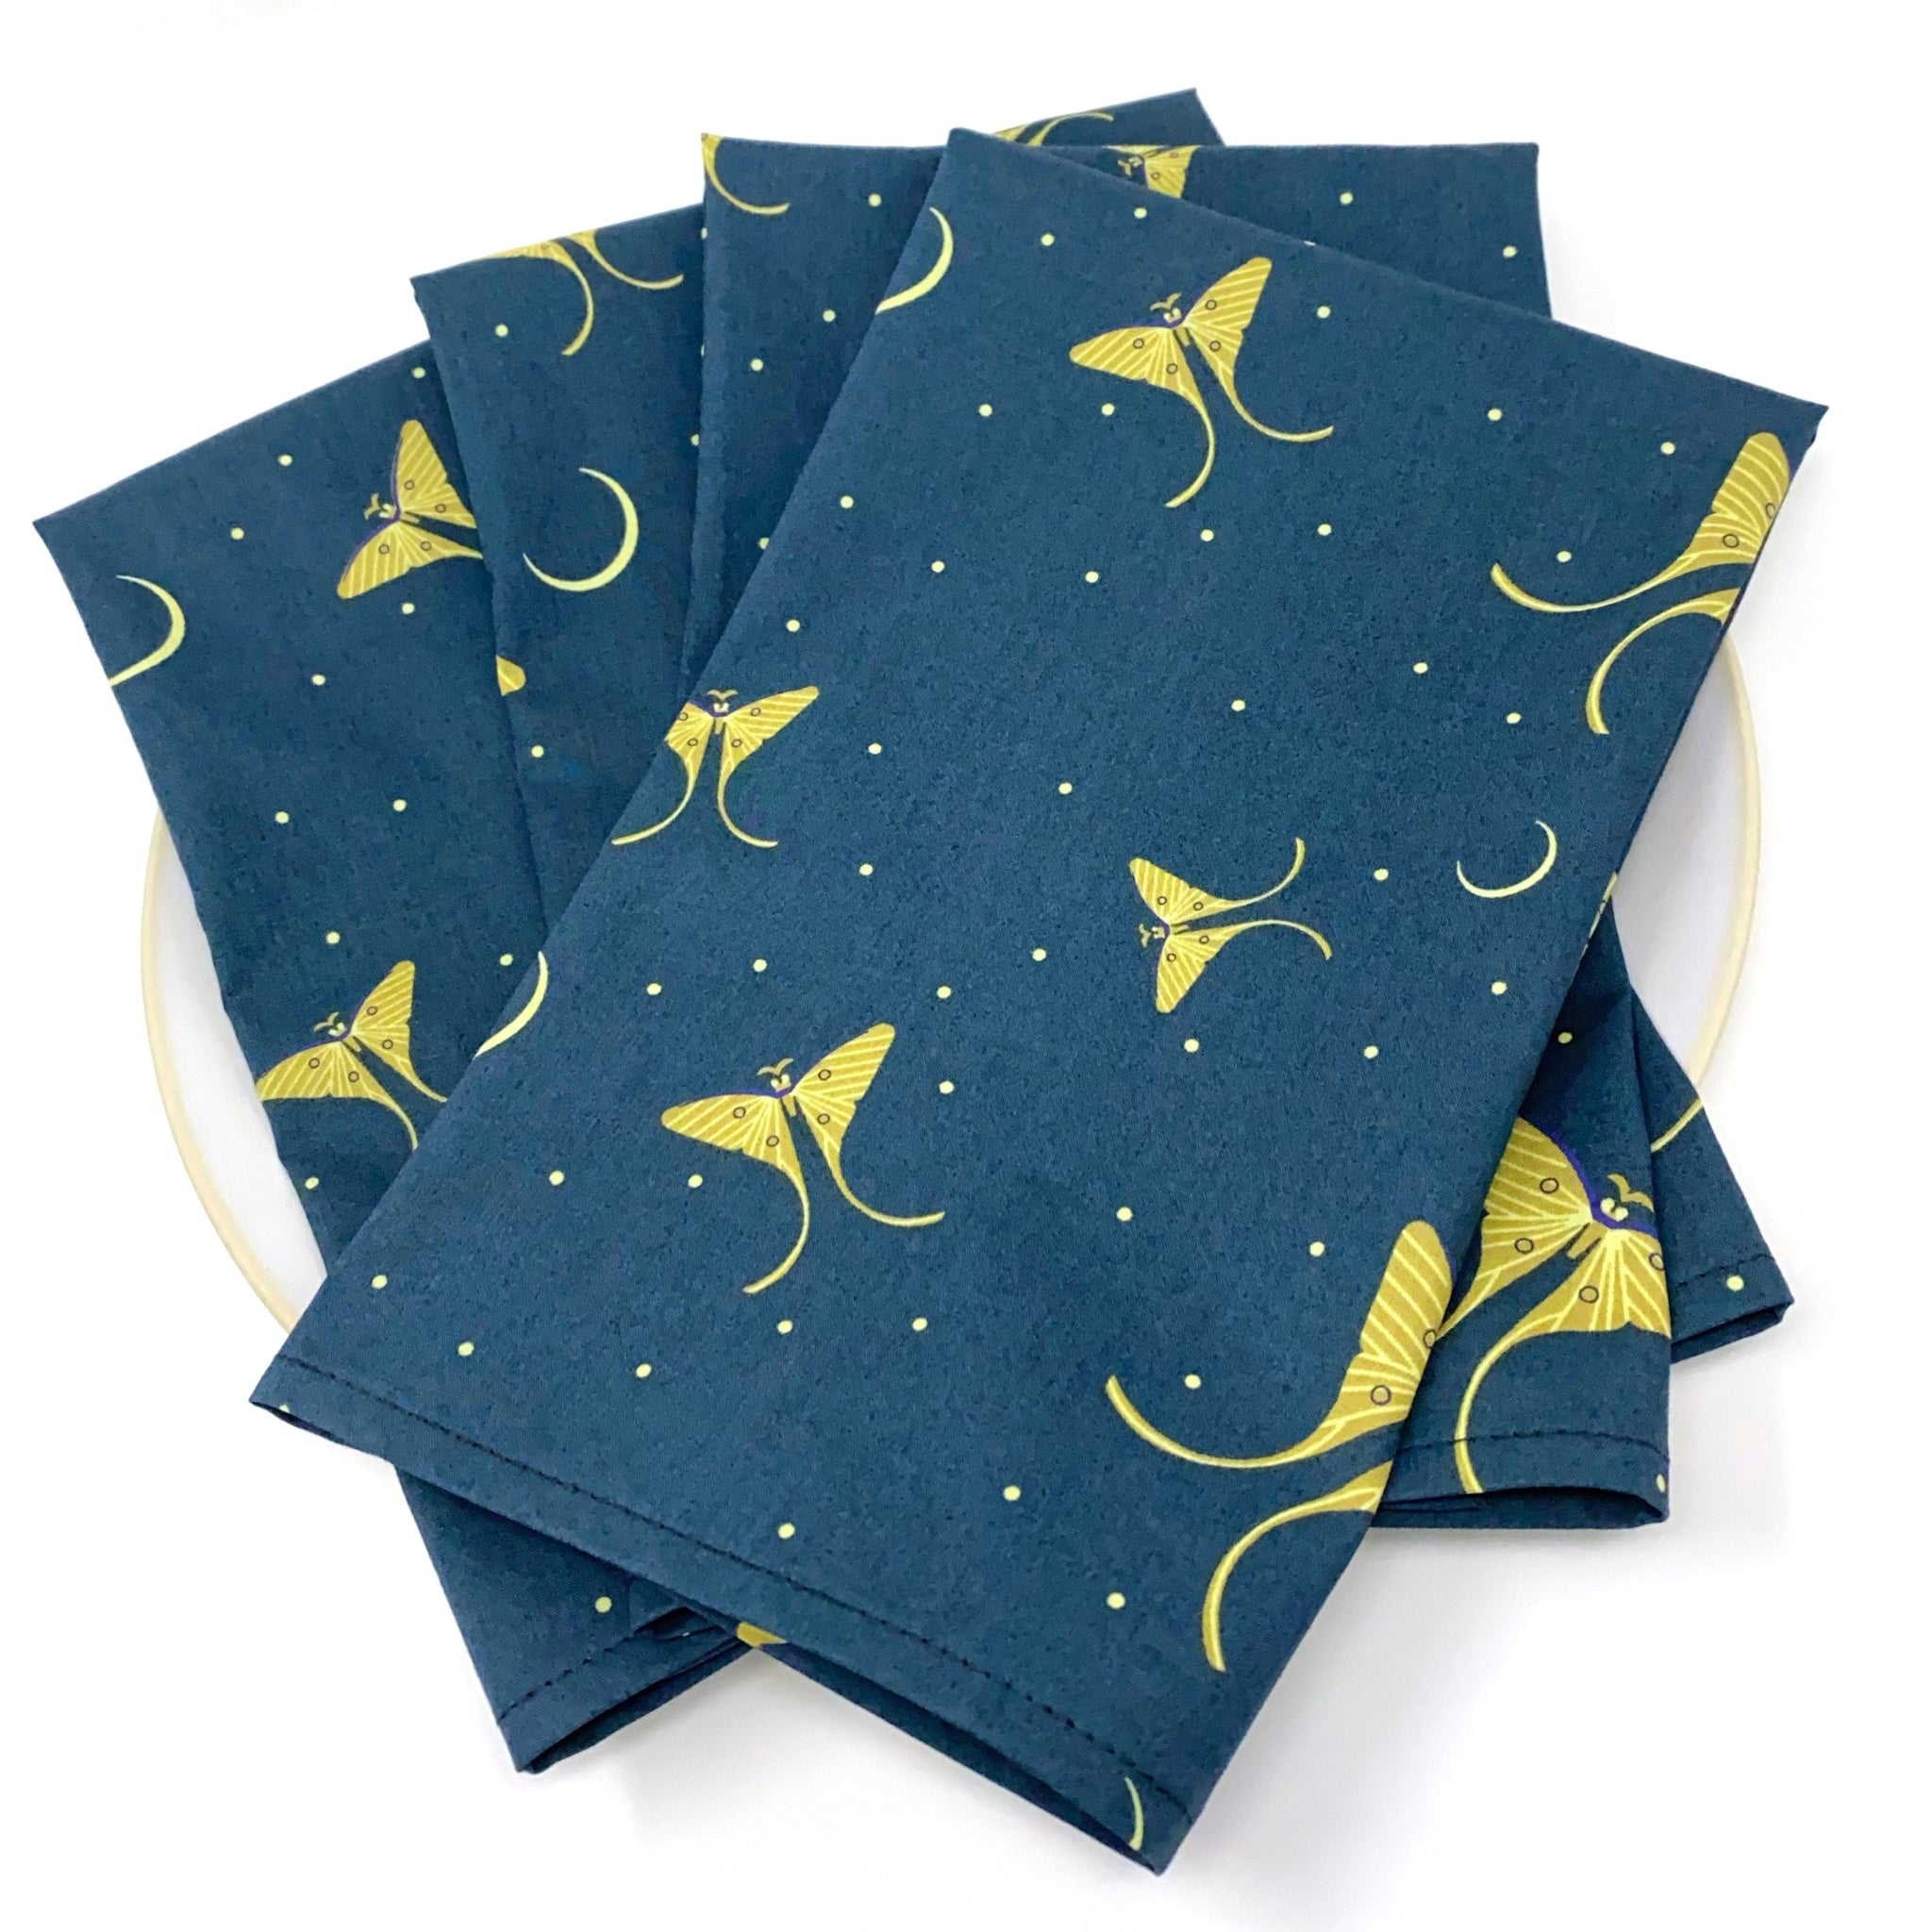 Organic Napkins - Set of 4 Charley Harper Luna Moth Flight